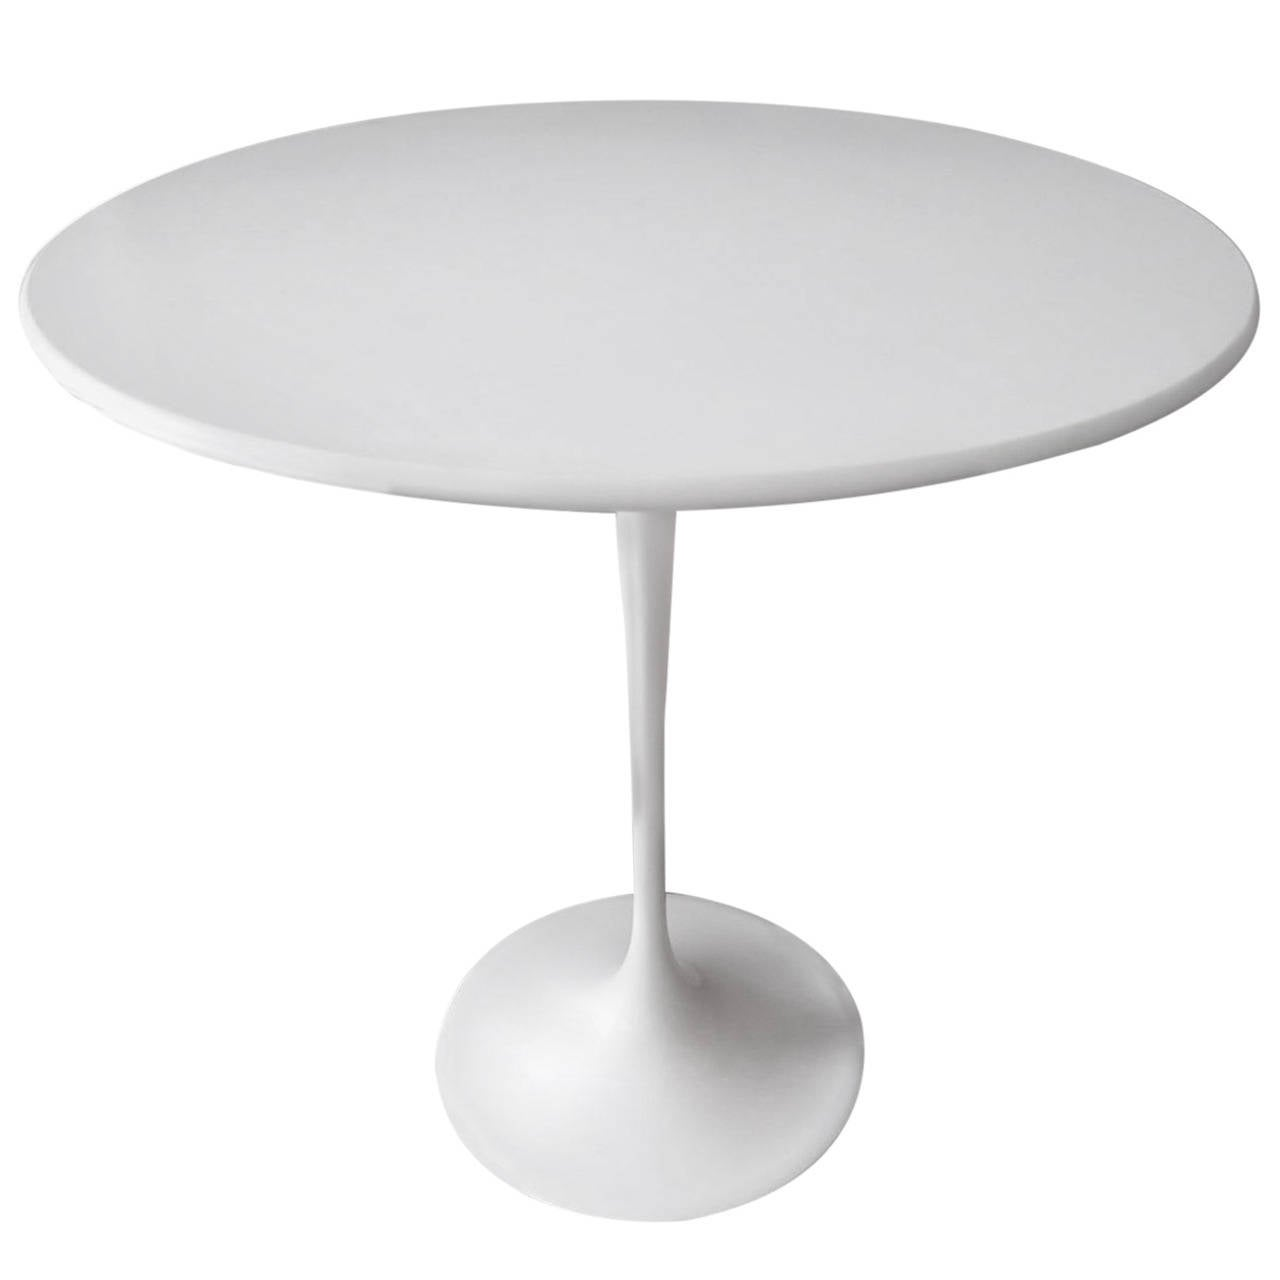 ... Vintage Knoll Saarinen, Round Mid-Century Modern Side Table at 1stdibs